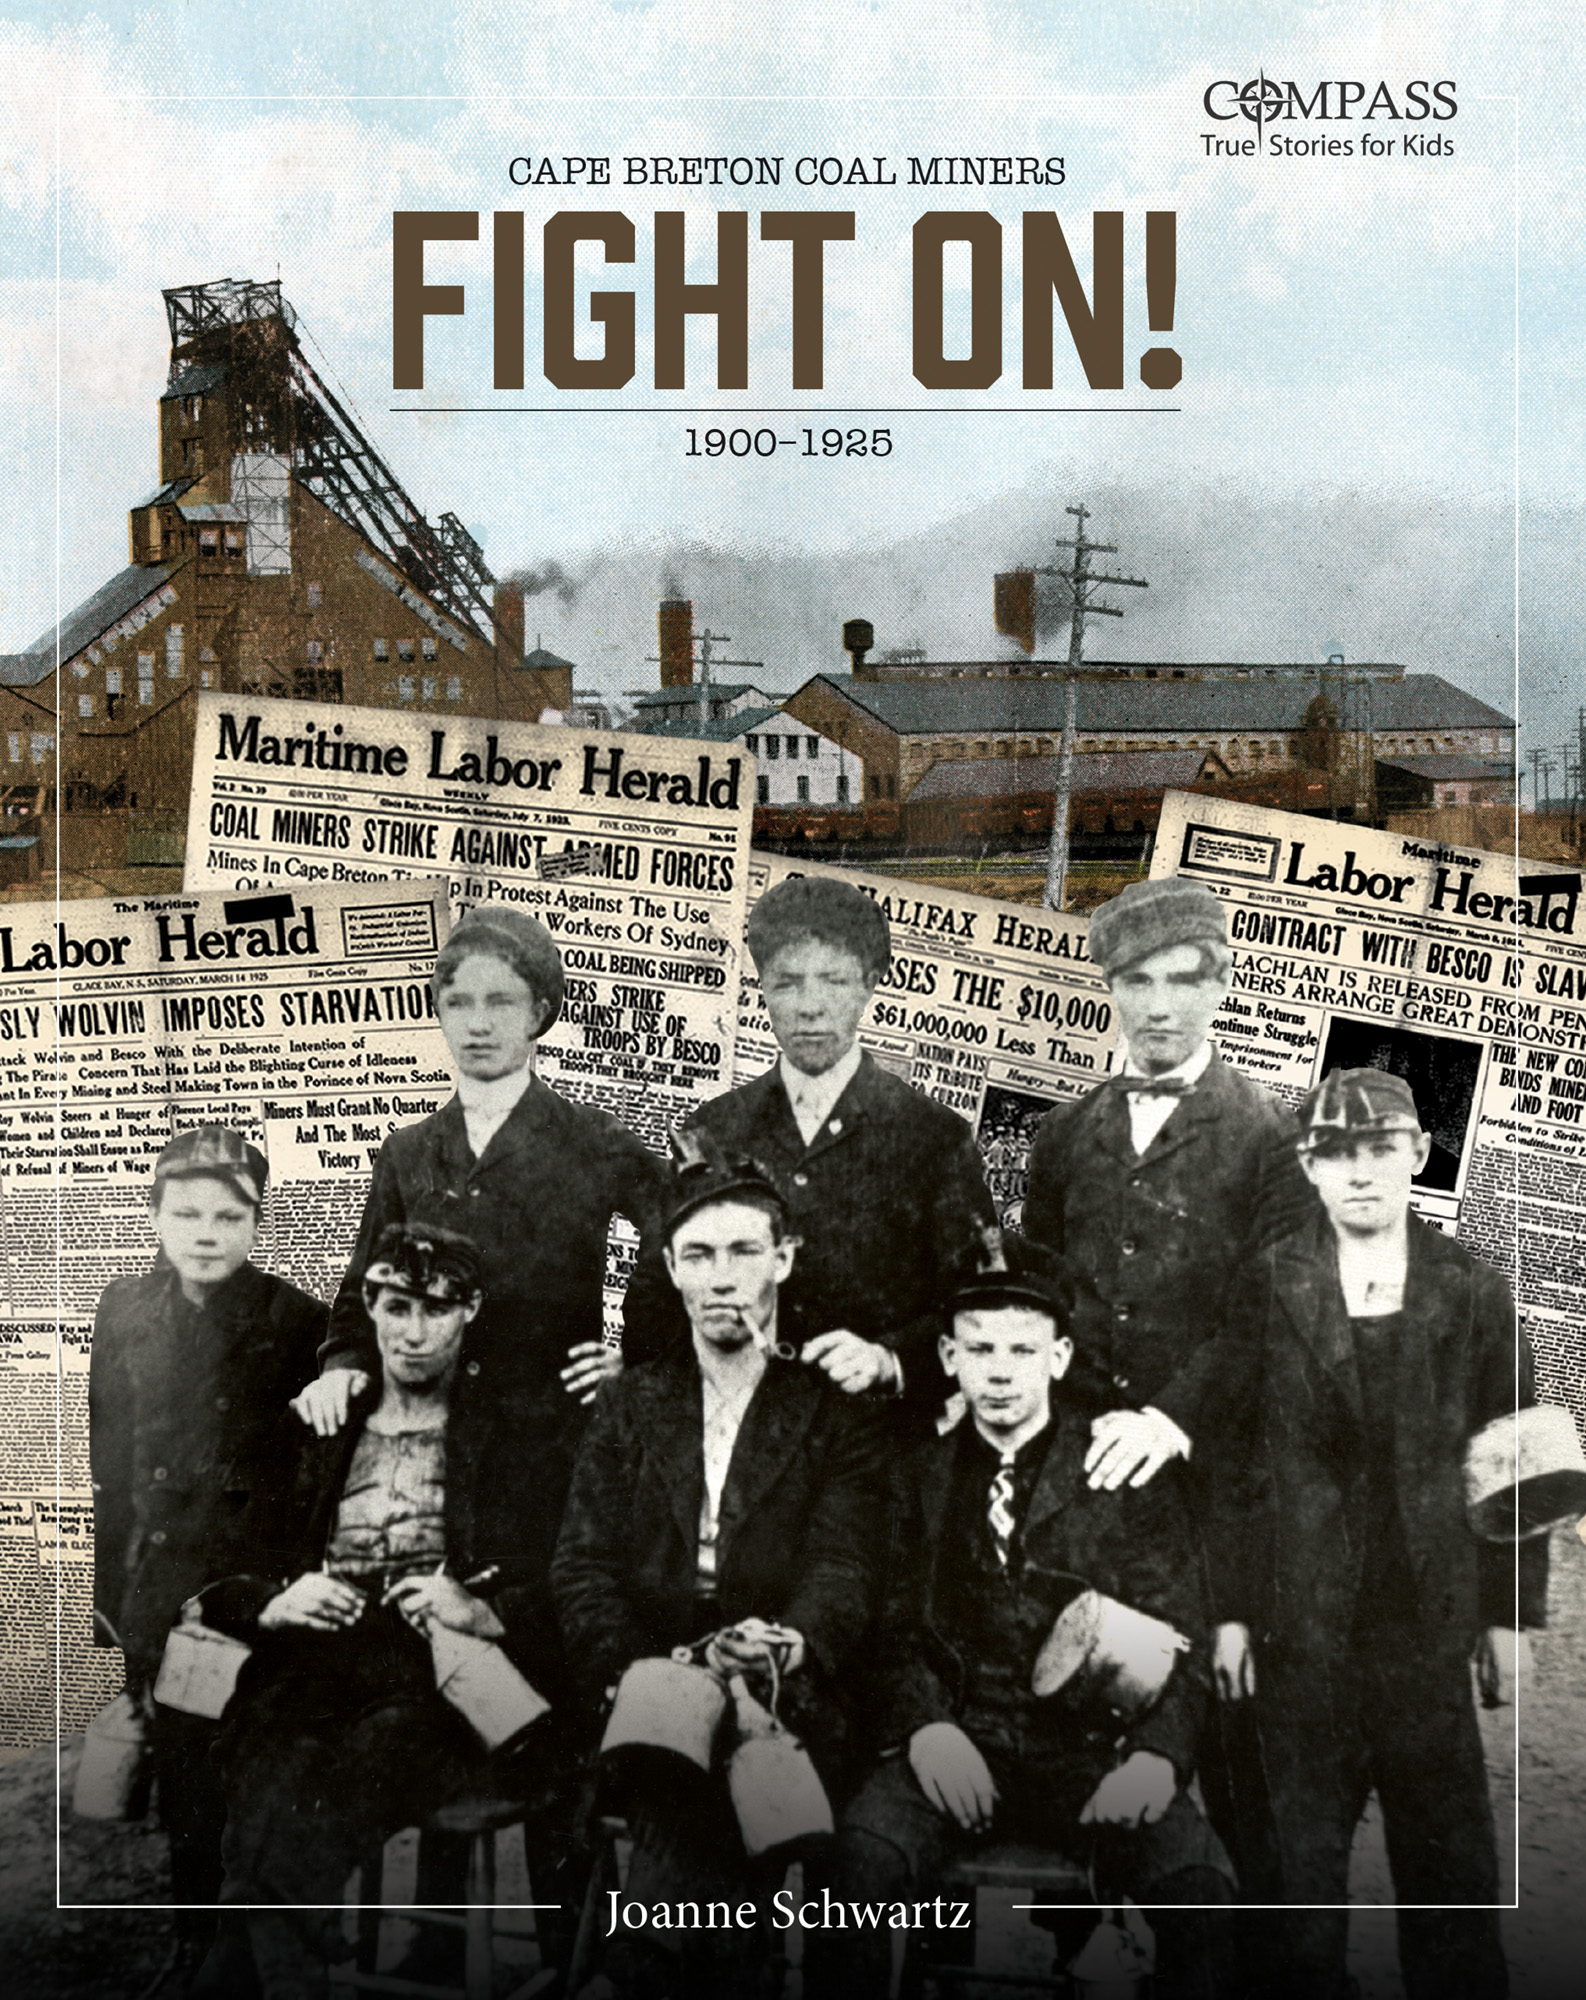 Fight On!: Cape Breton Coal Miners, 1900-1925